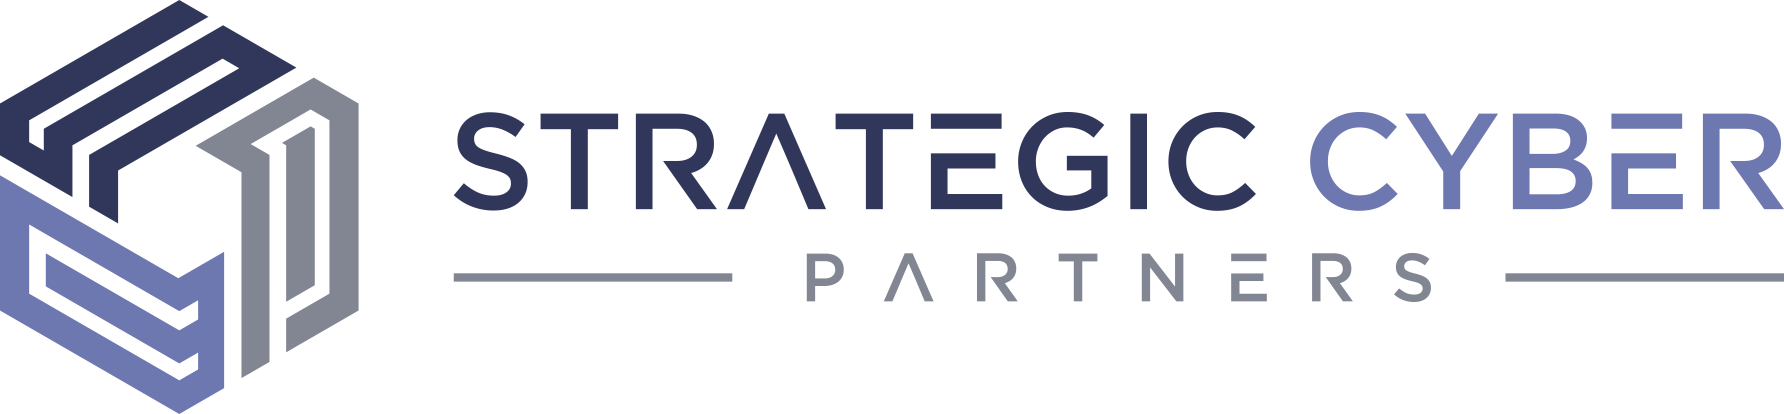 Strategic Cyber Partners logo